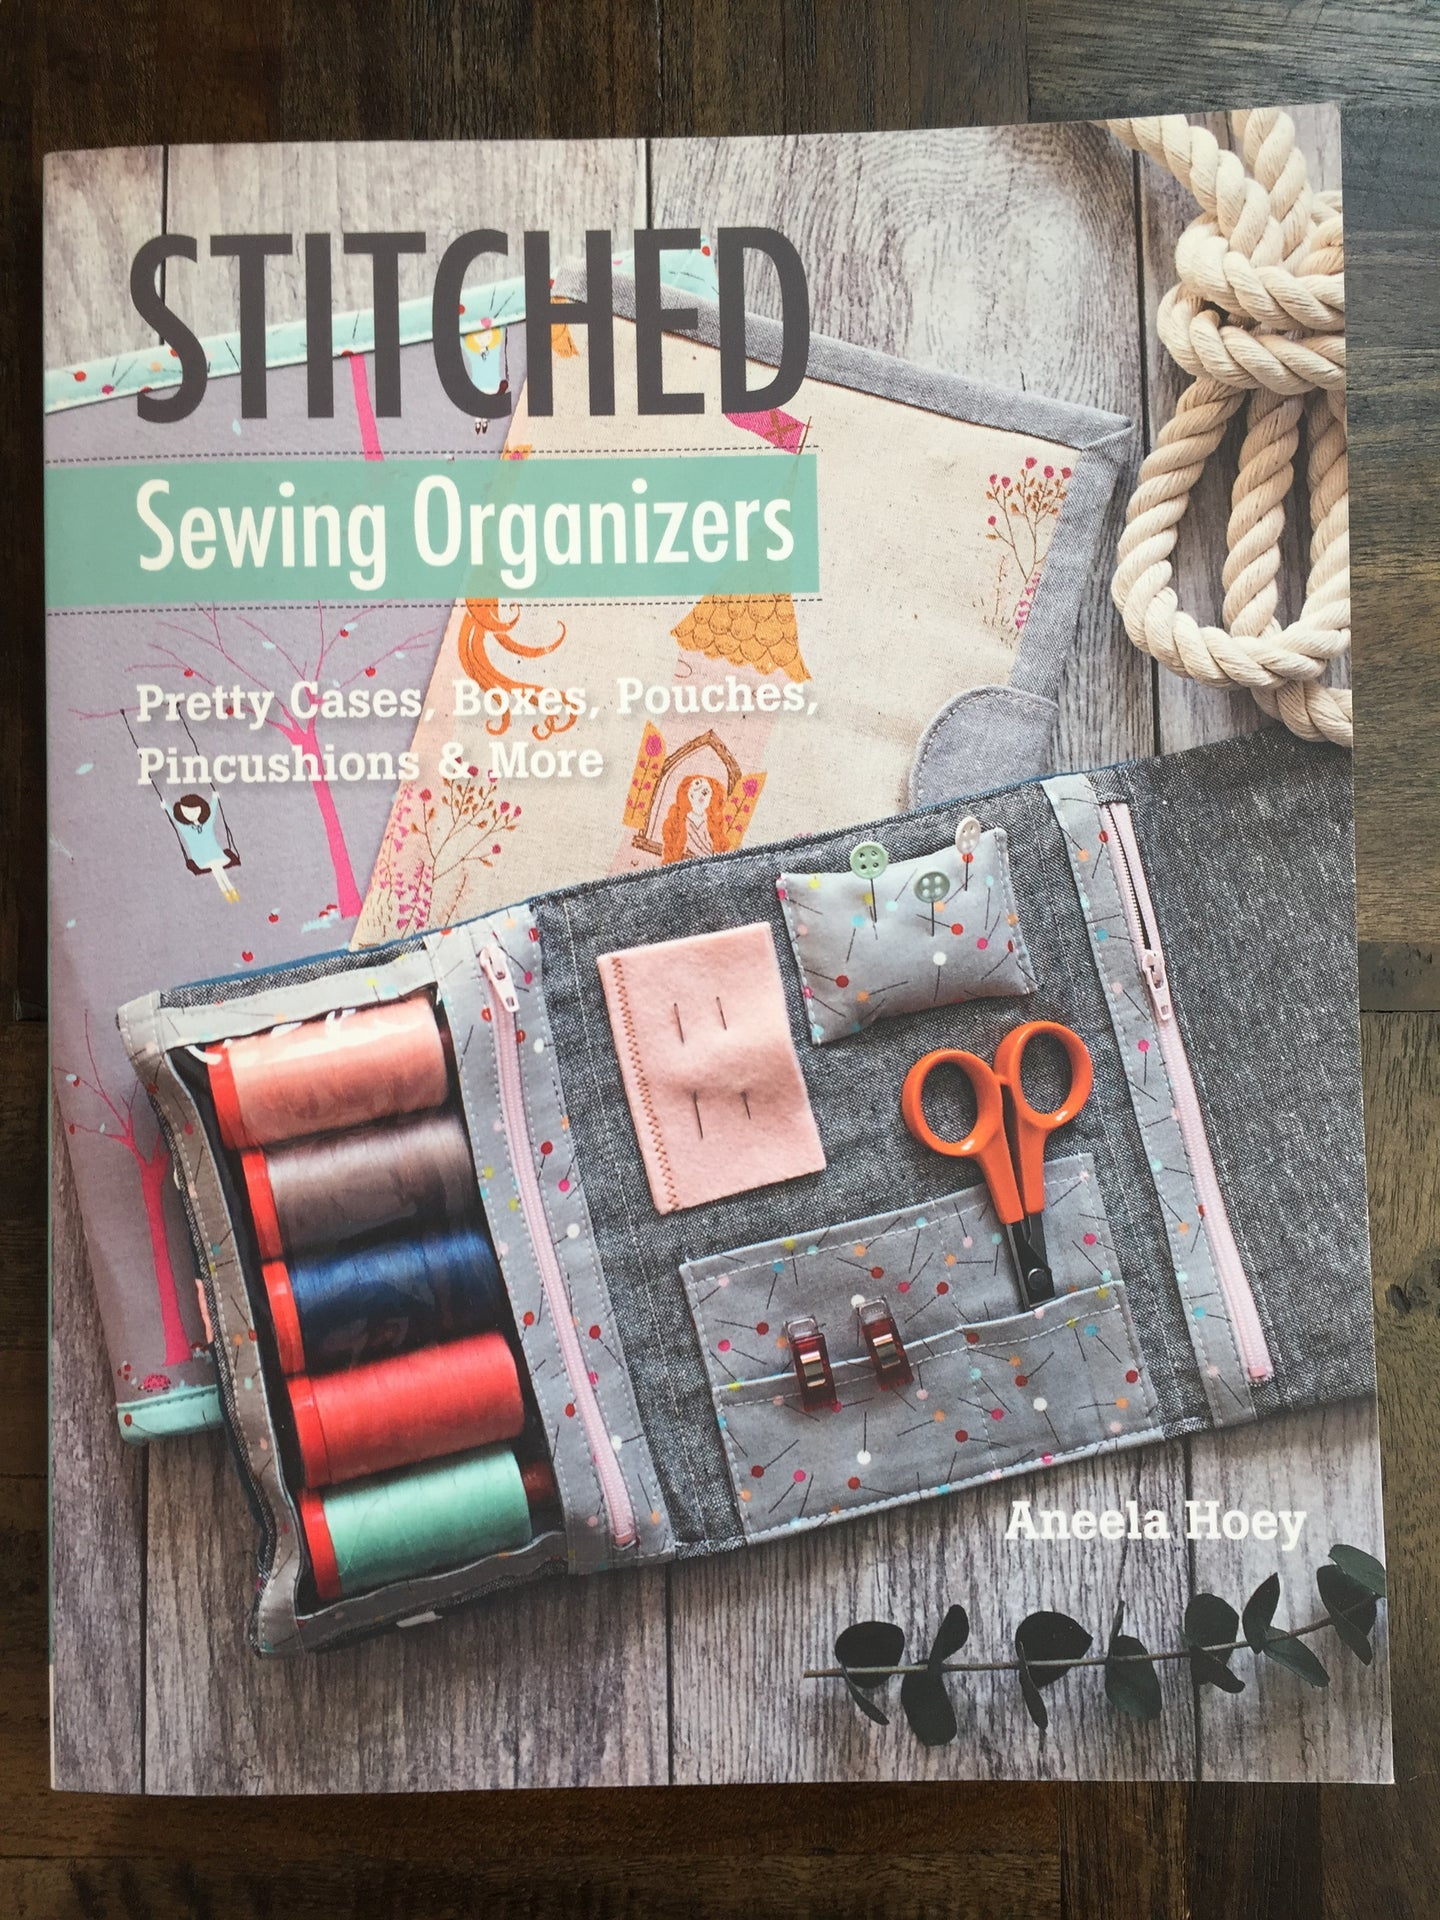 Stitched Sewing Organizers Pretty Cases, Boxes, Pouches, Pincushions & More